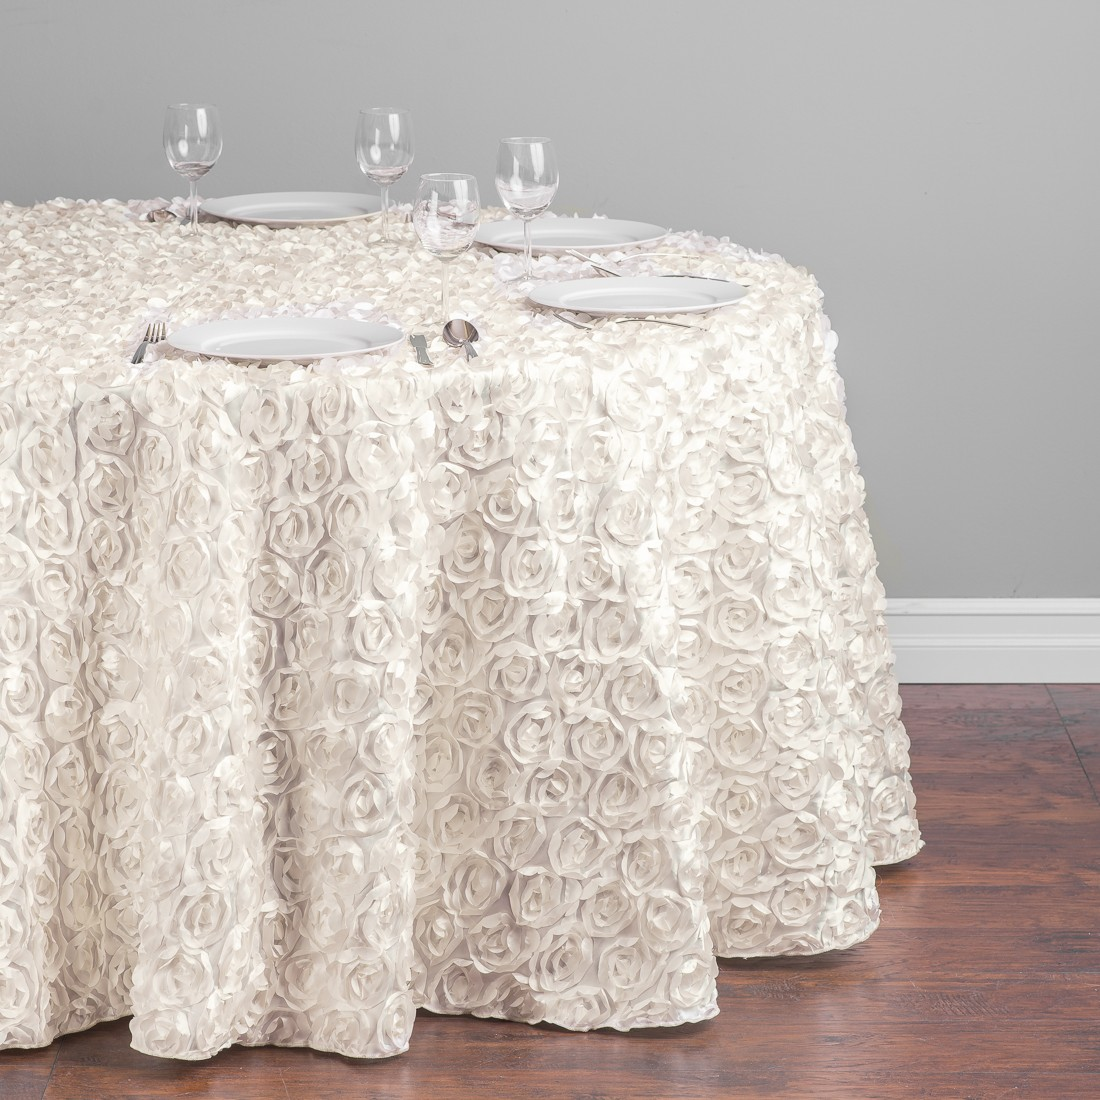 Rosette Table Linen All Colors